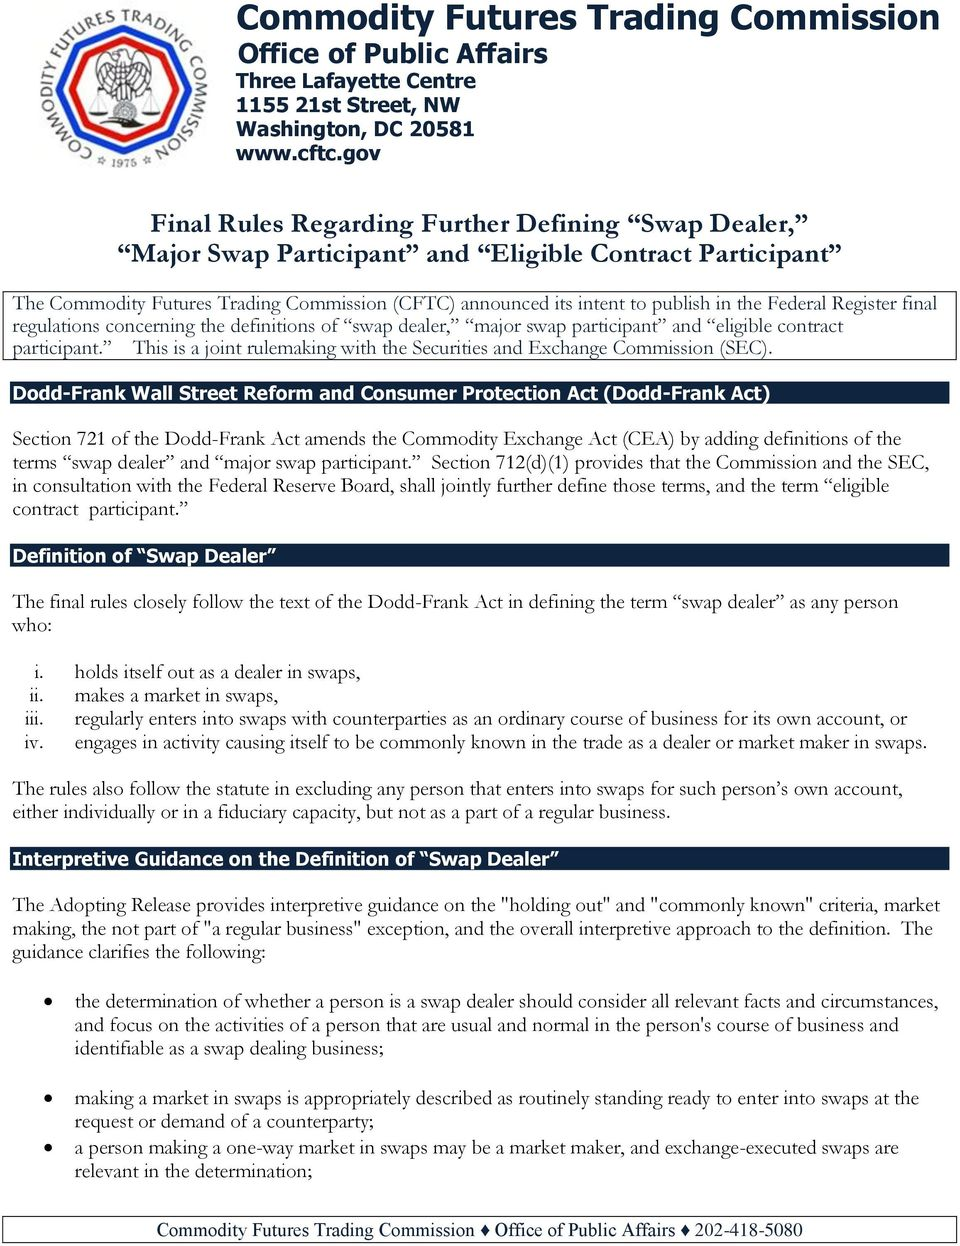 Federal Register final regulations concerning the definitions of swap dealer, major swap participant and eligible contract participant.